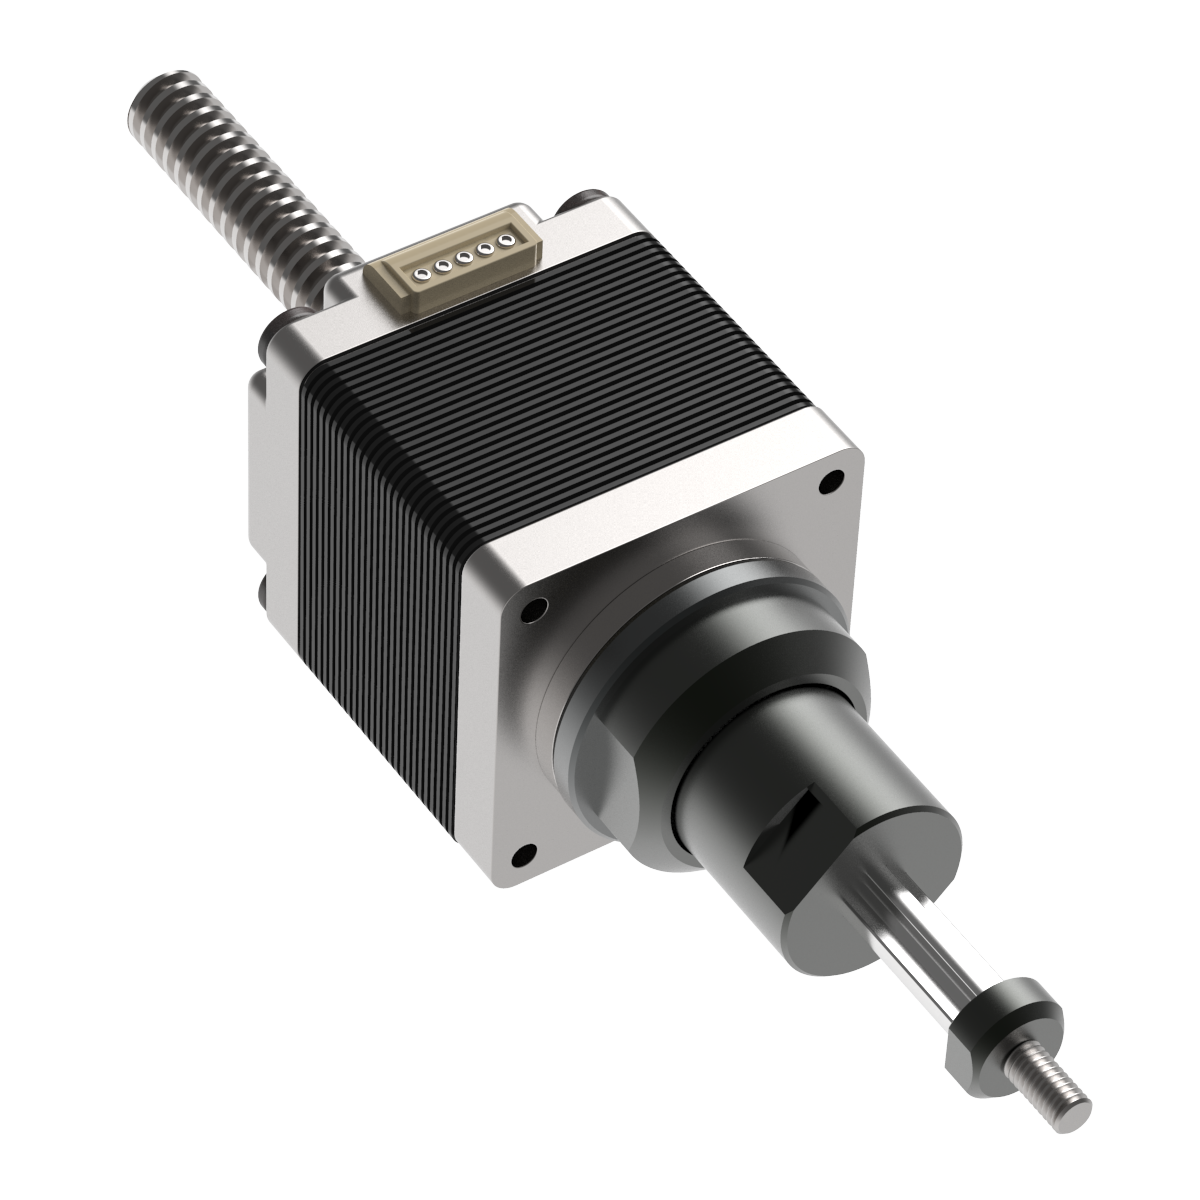 Captive Linear Actuator - SMA-11D2.1V-C-018-025-19.1